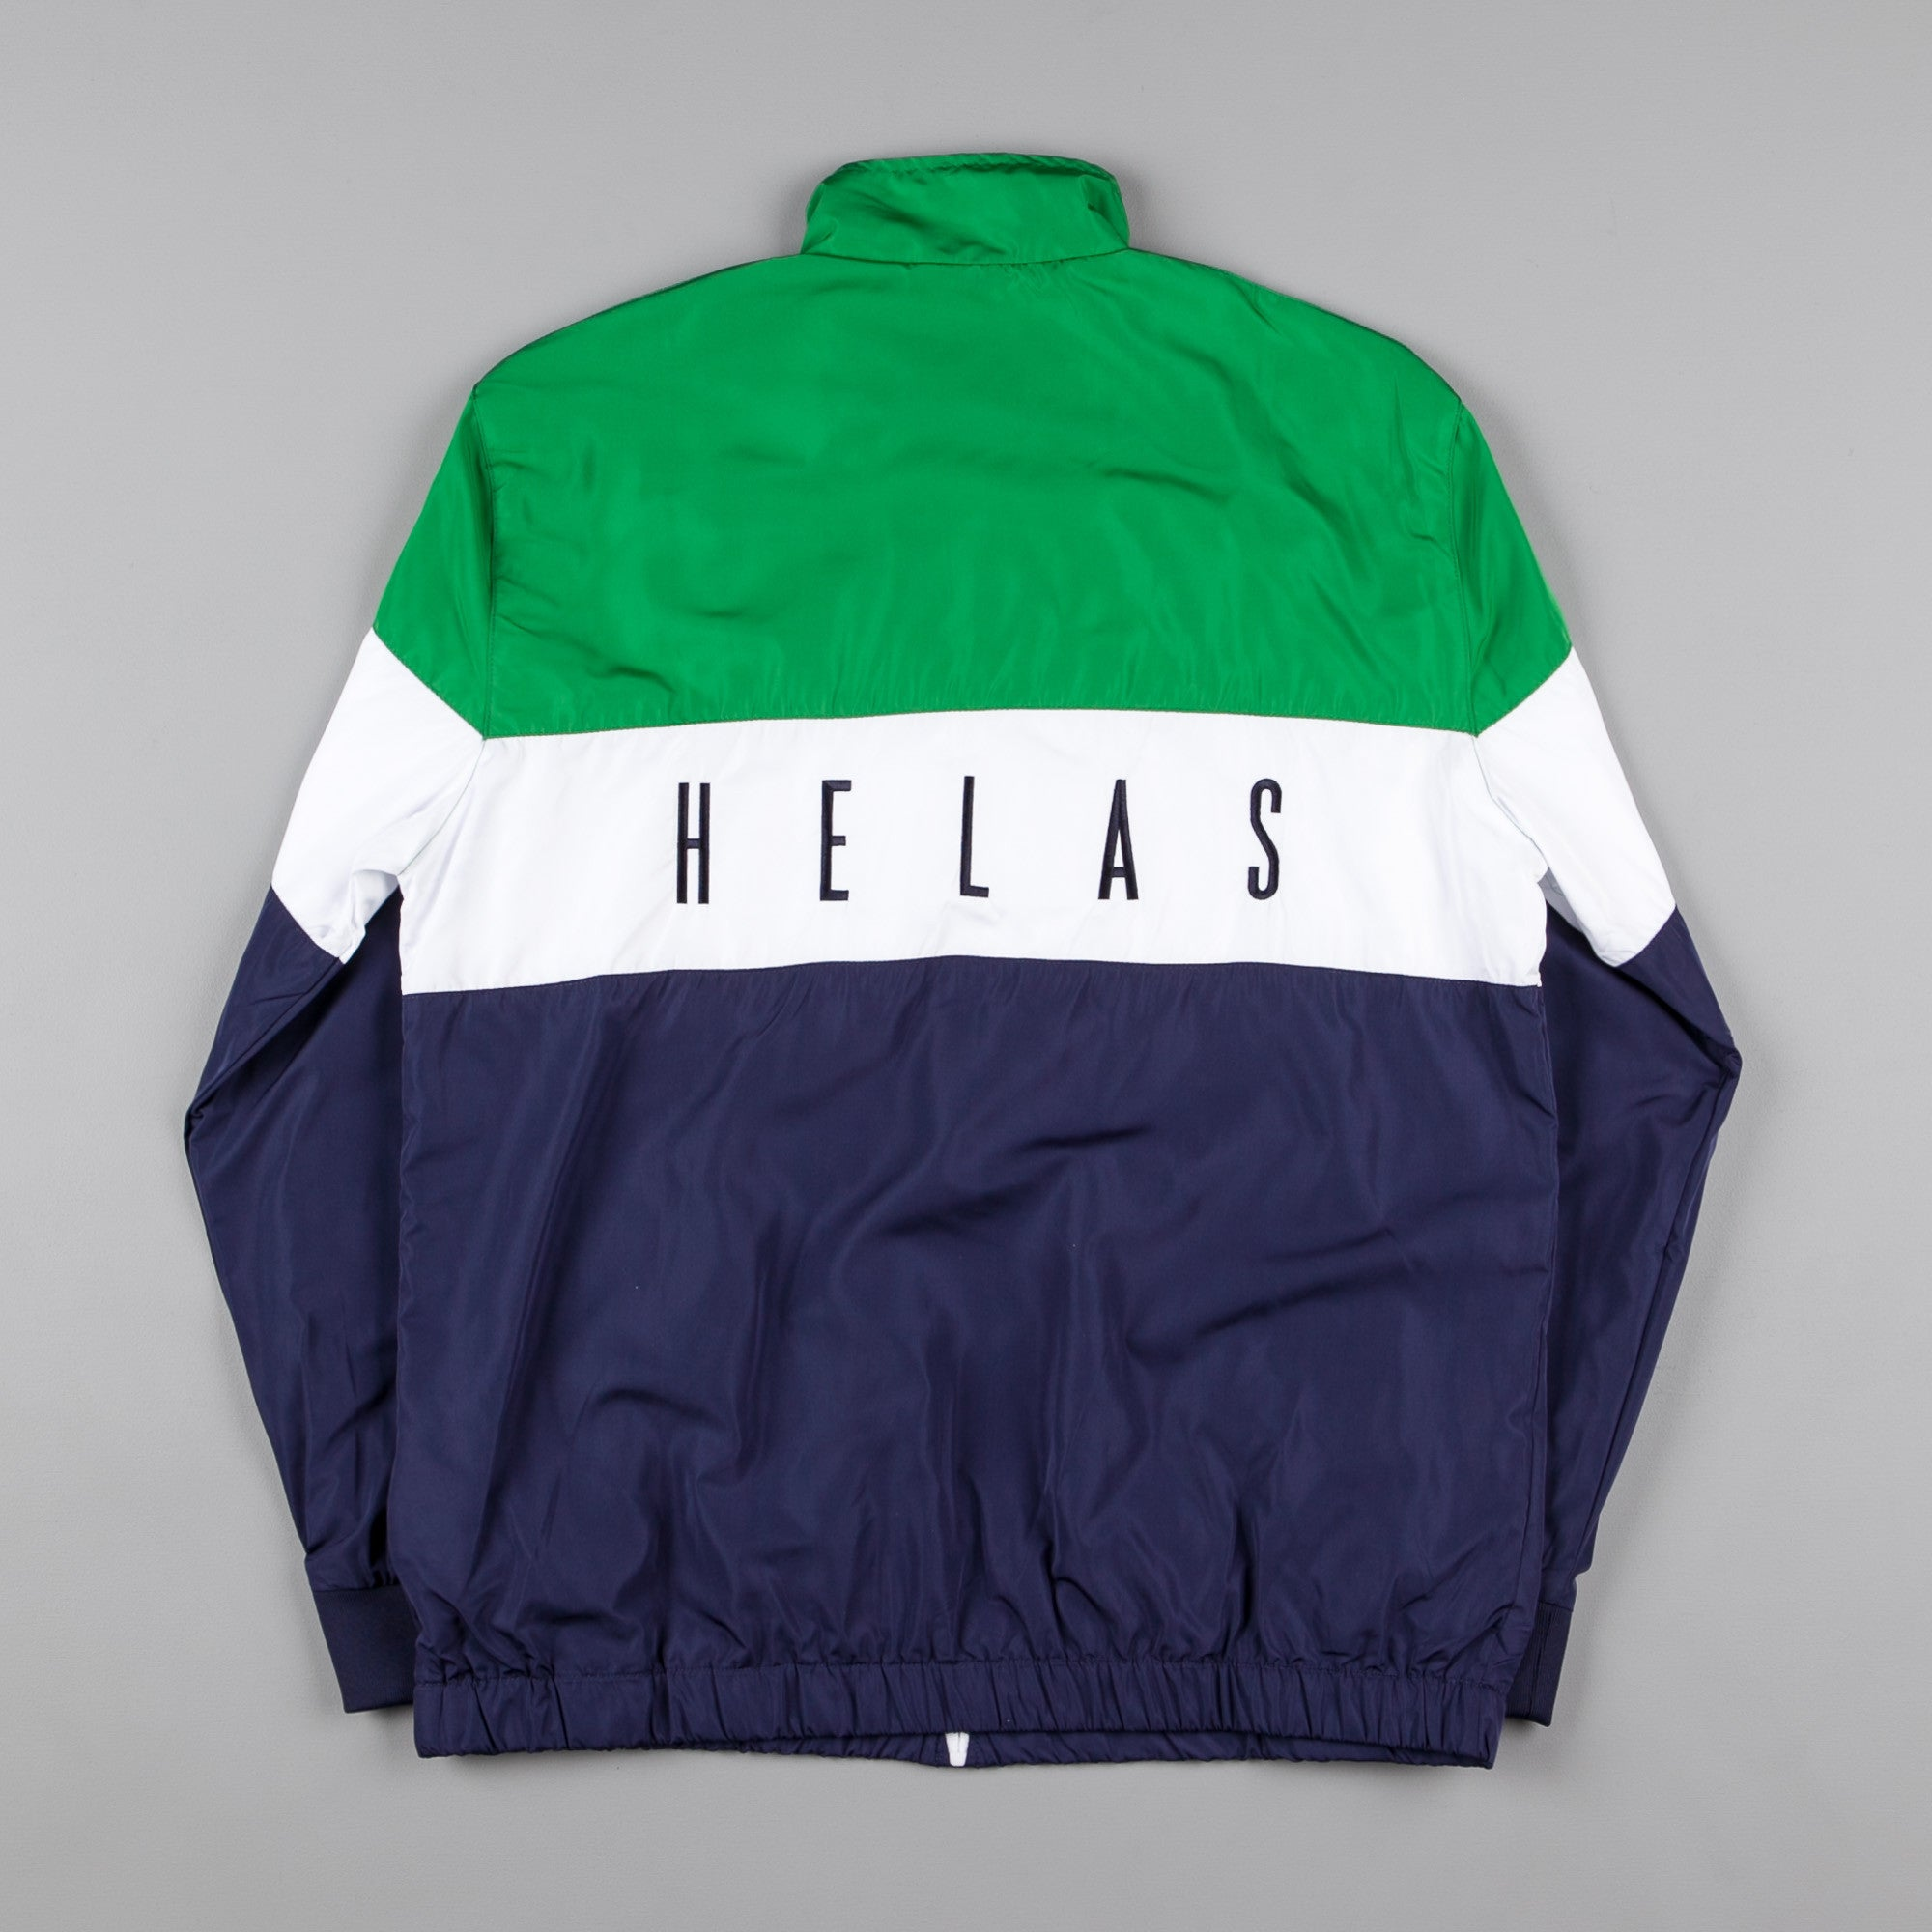 Helas Corner Tracksuit Jacket - Navy Blue / White / Green